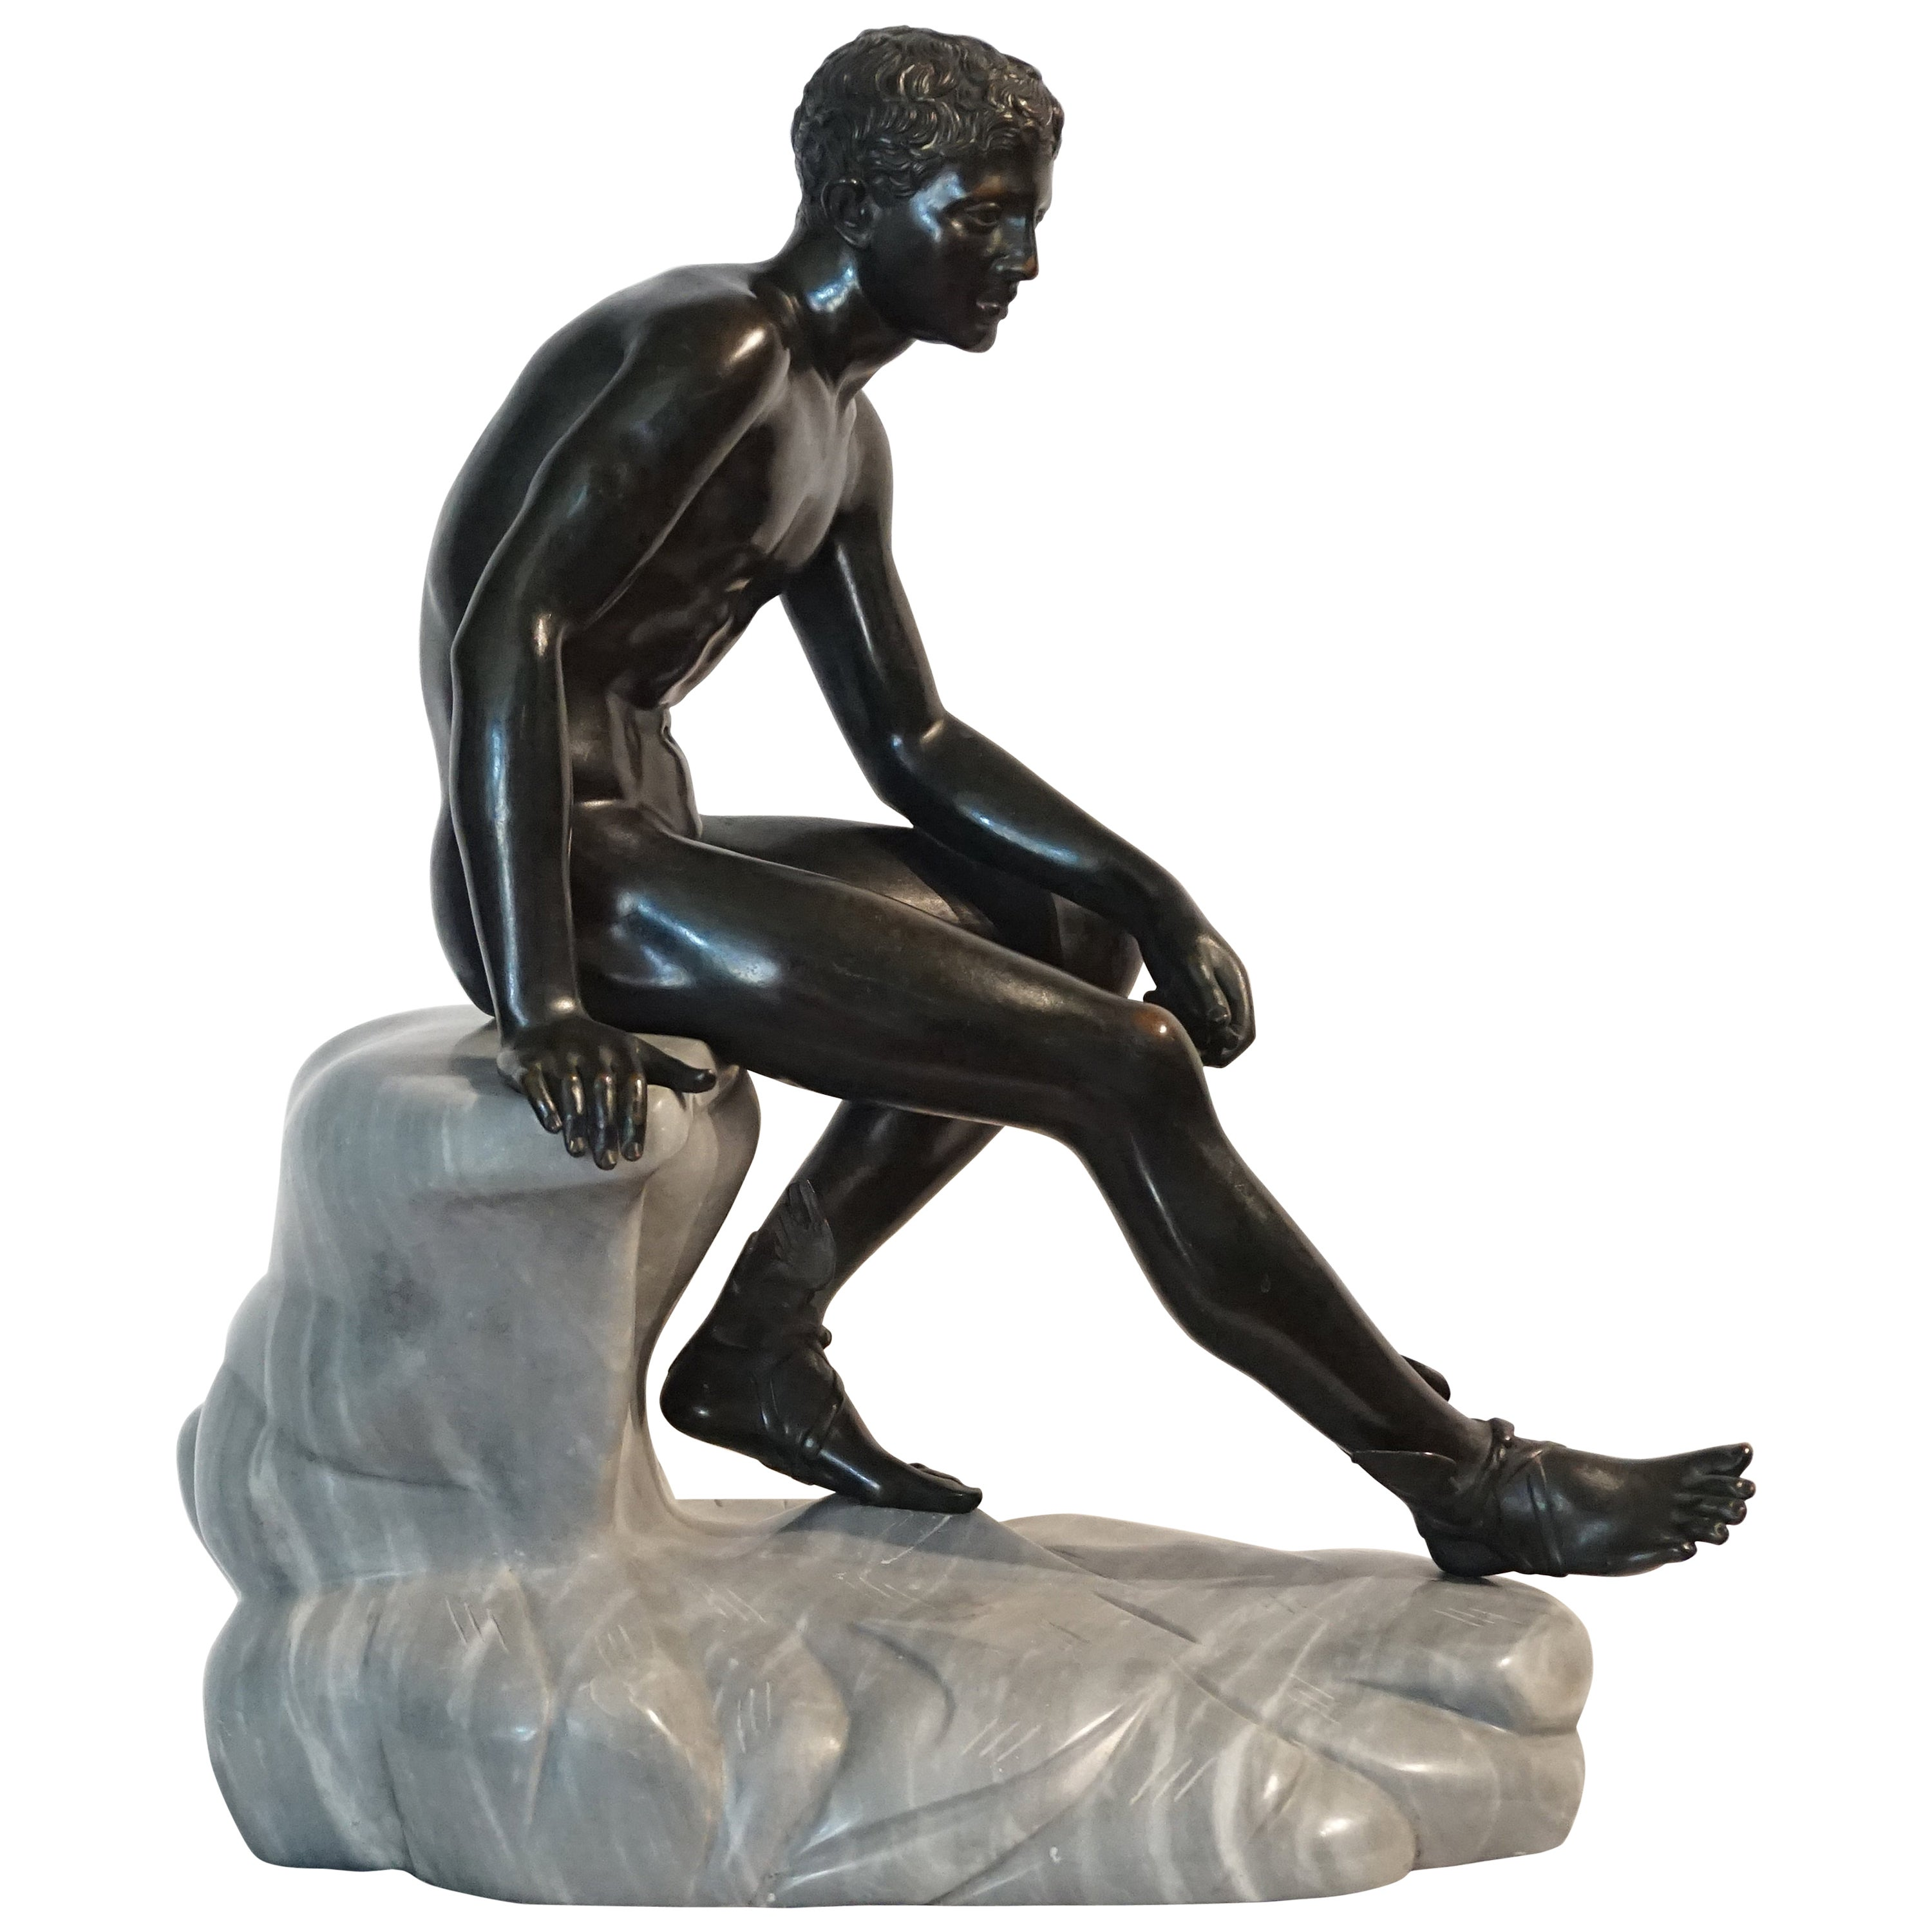 Grand Tour Bronze and Marble Sculpture of the 'Seated Hermes' or Mercury